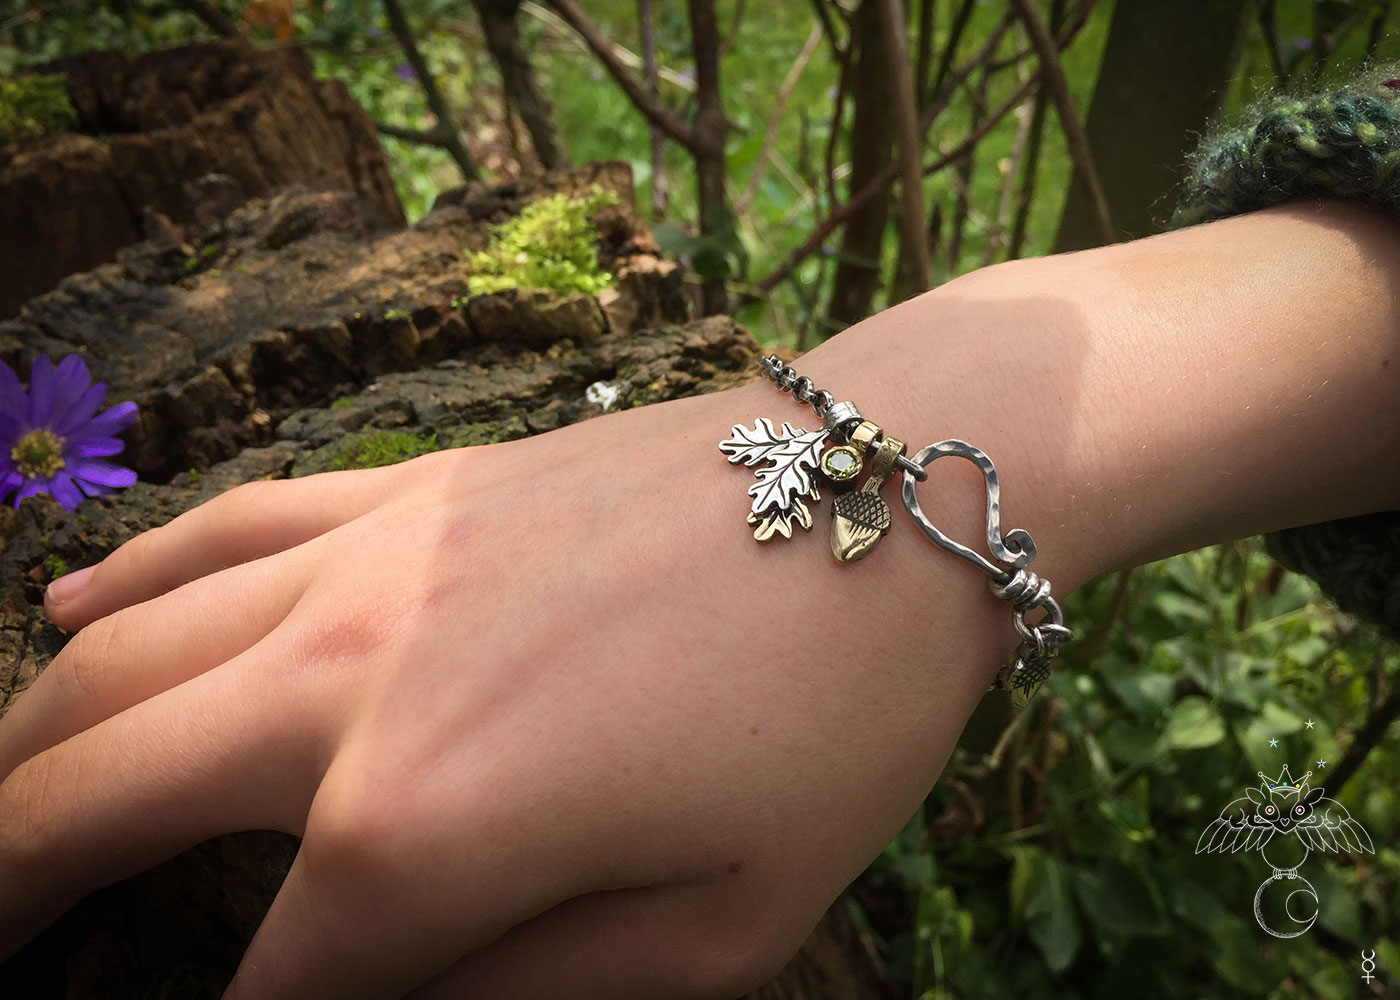 Silver charm bracelet handcrafted and recycled for the tree of life sculpture collection